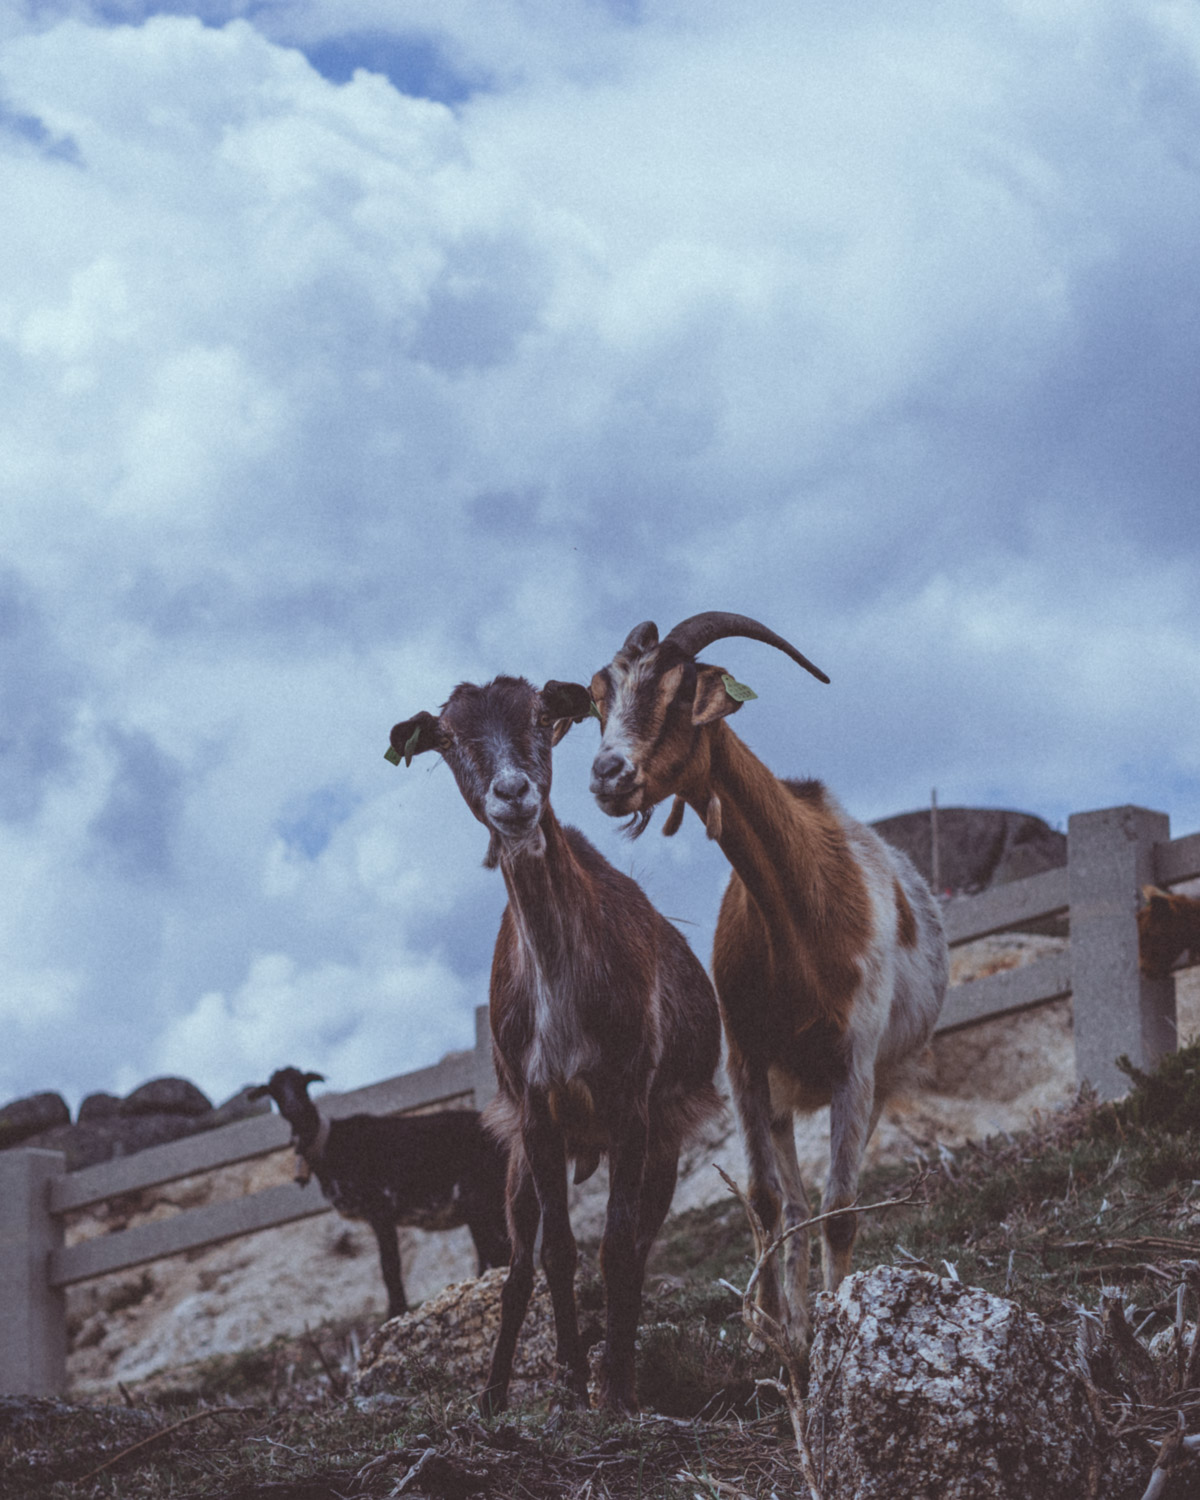 Two goats with cloudy sky behind